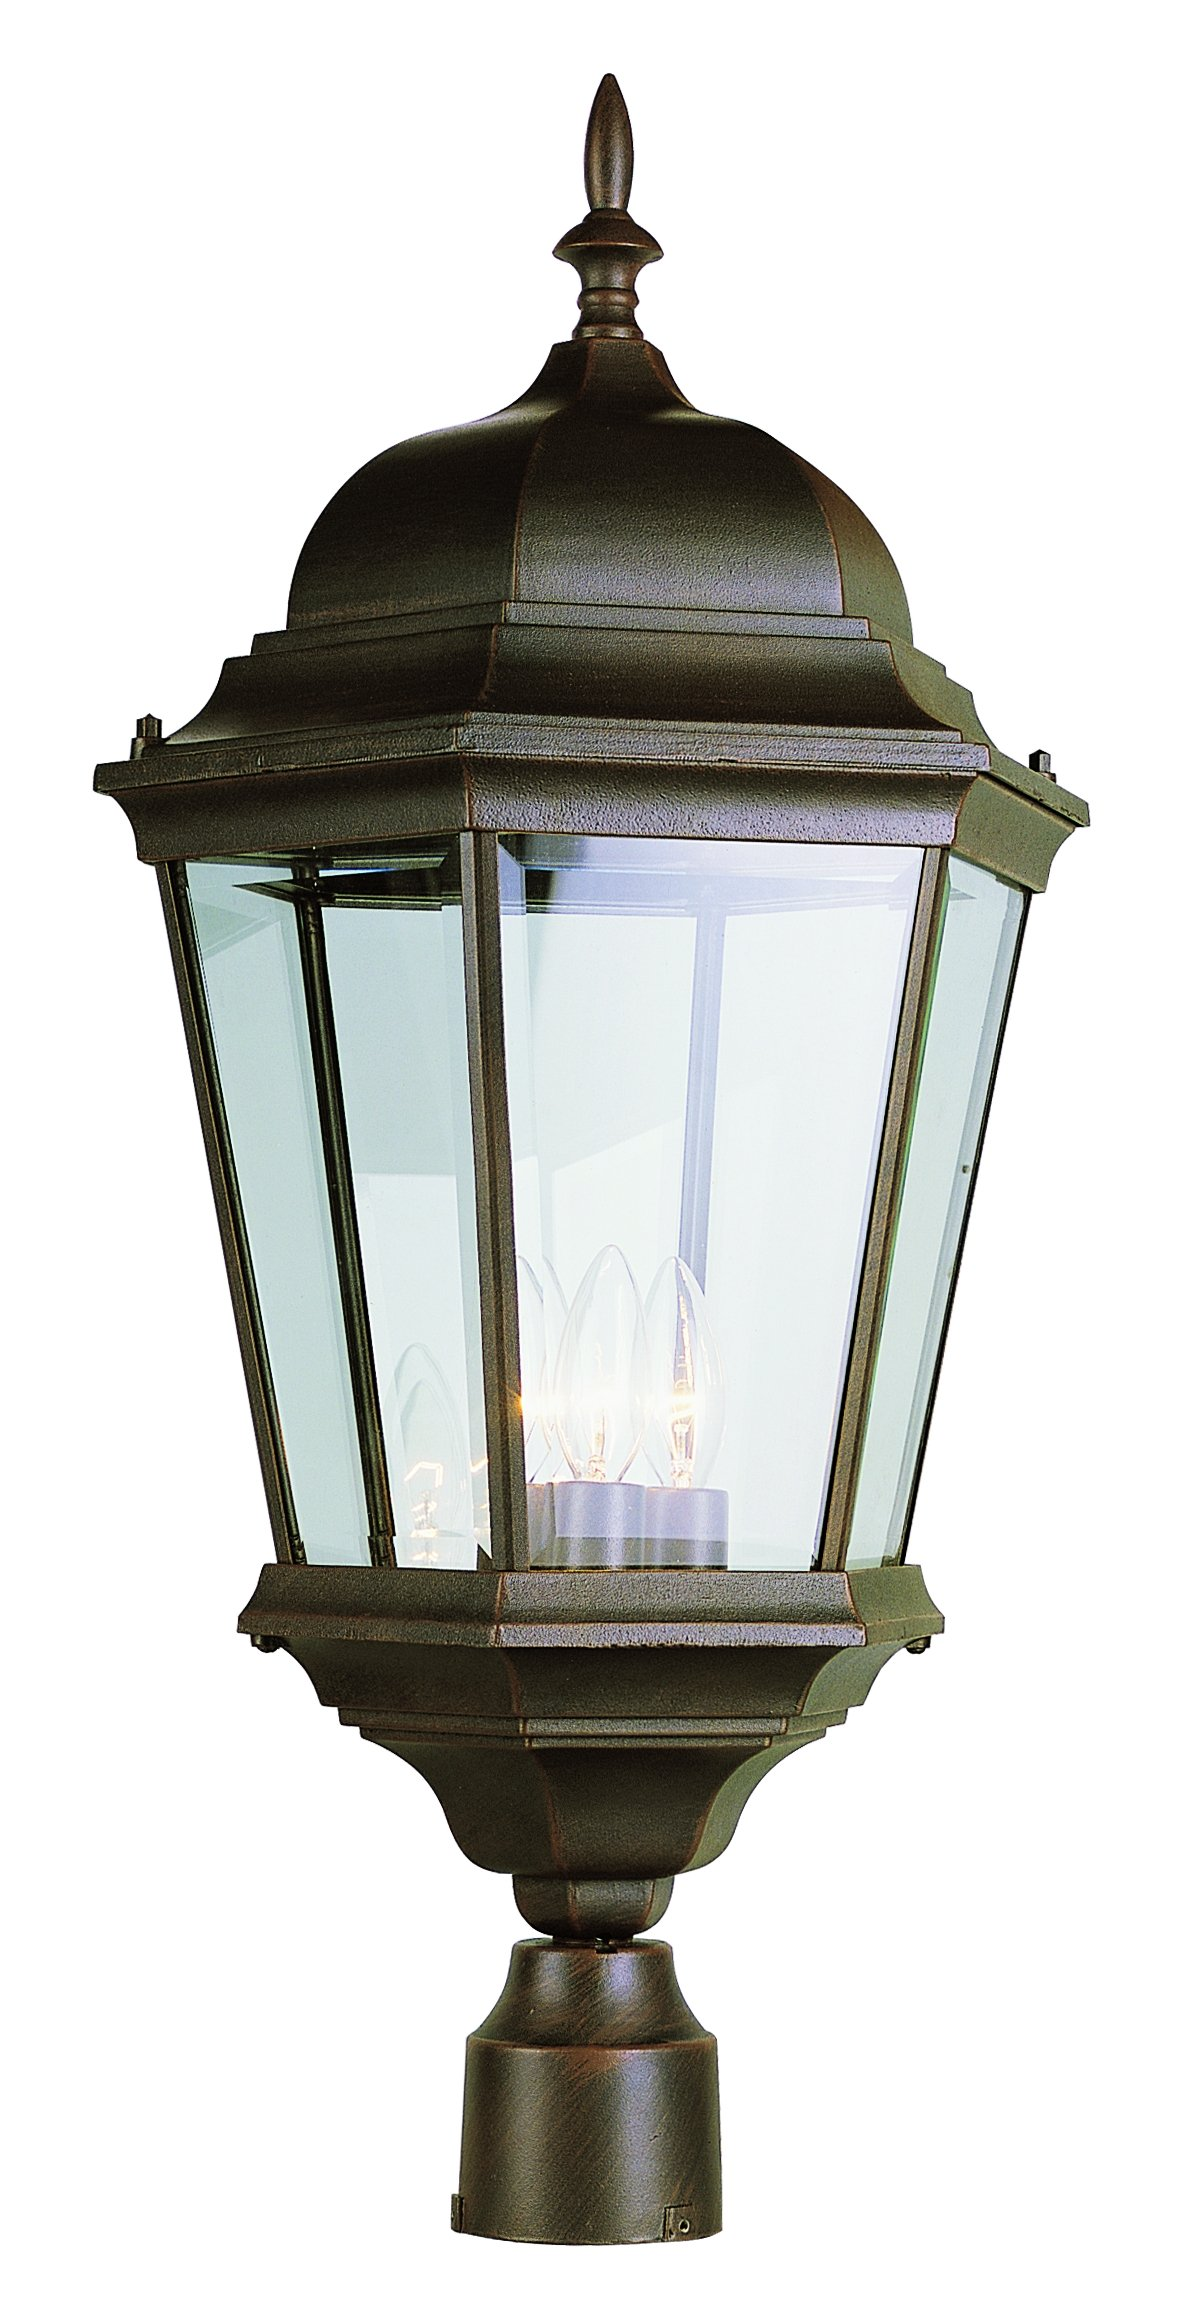 Trans Globe Lighting 51001 RT Outdoor Classical 26.75'' Postmount Lantern, Rust